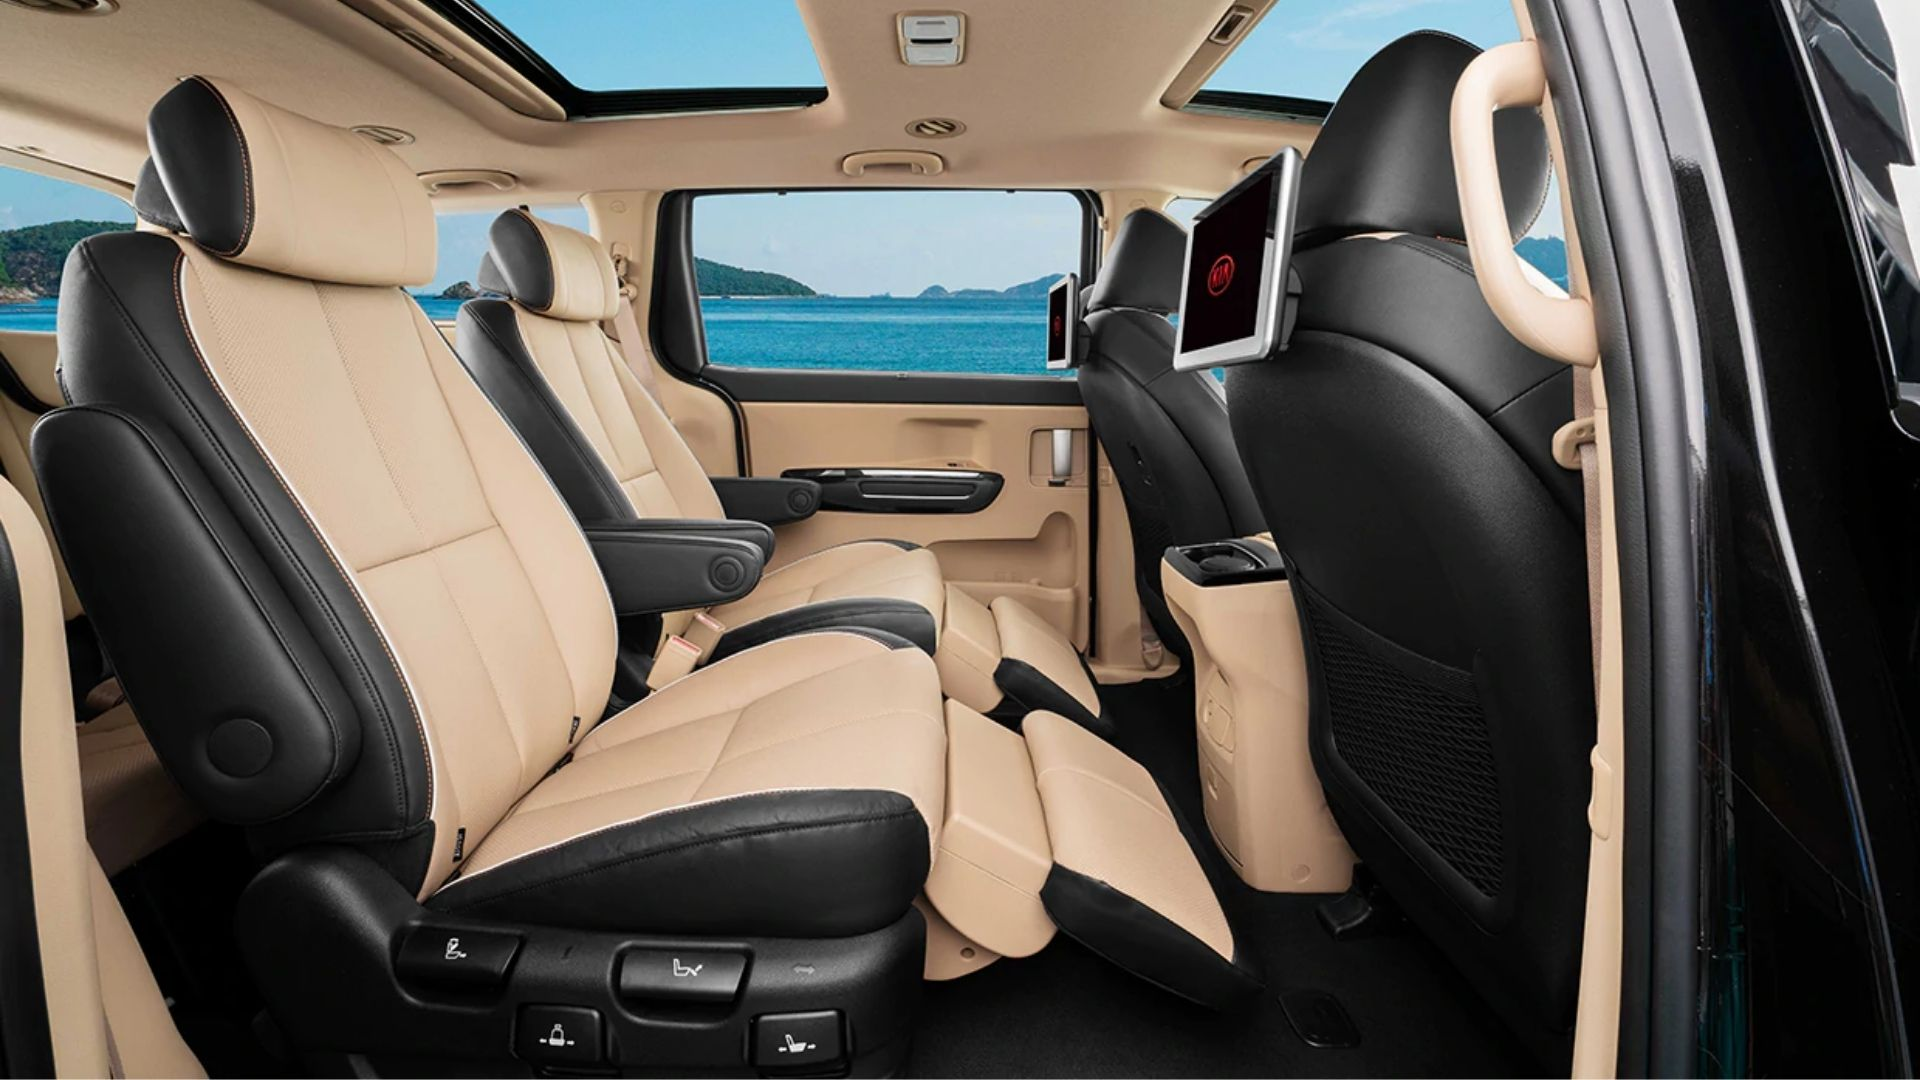 Kia Carnival Interior Features